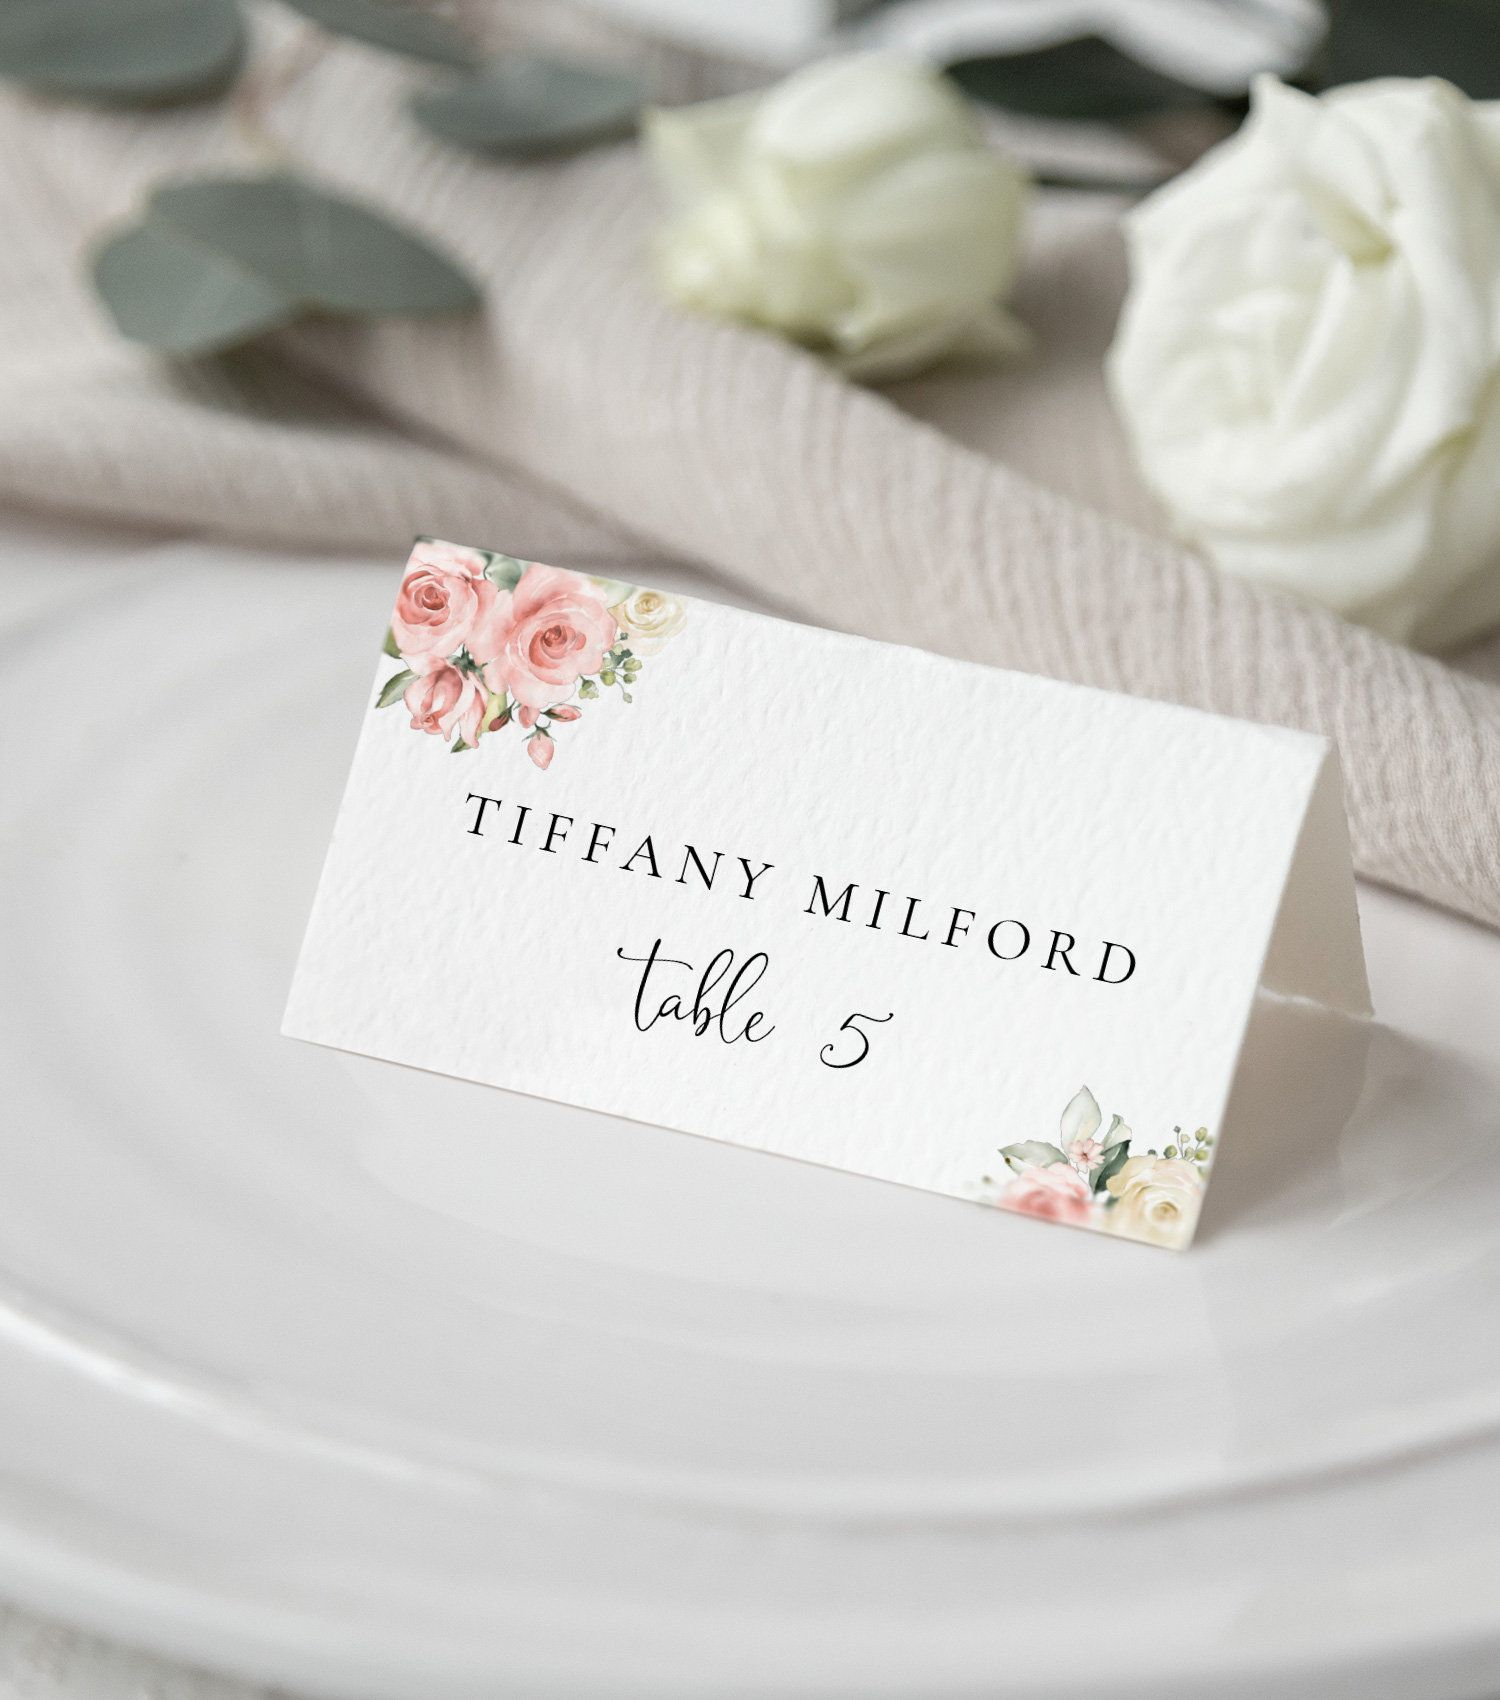 Wedding Place Card Template With Watercolor Light Pink Roses Etsy In 2021 Wedding Place Card Templates Wedding Place Cards Place Card Template